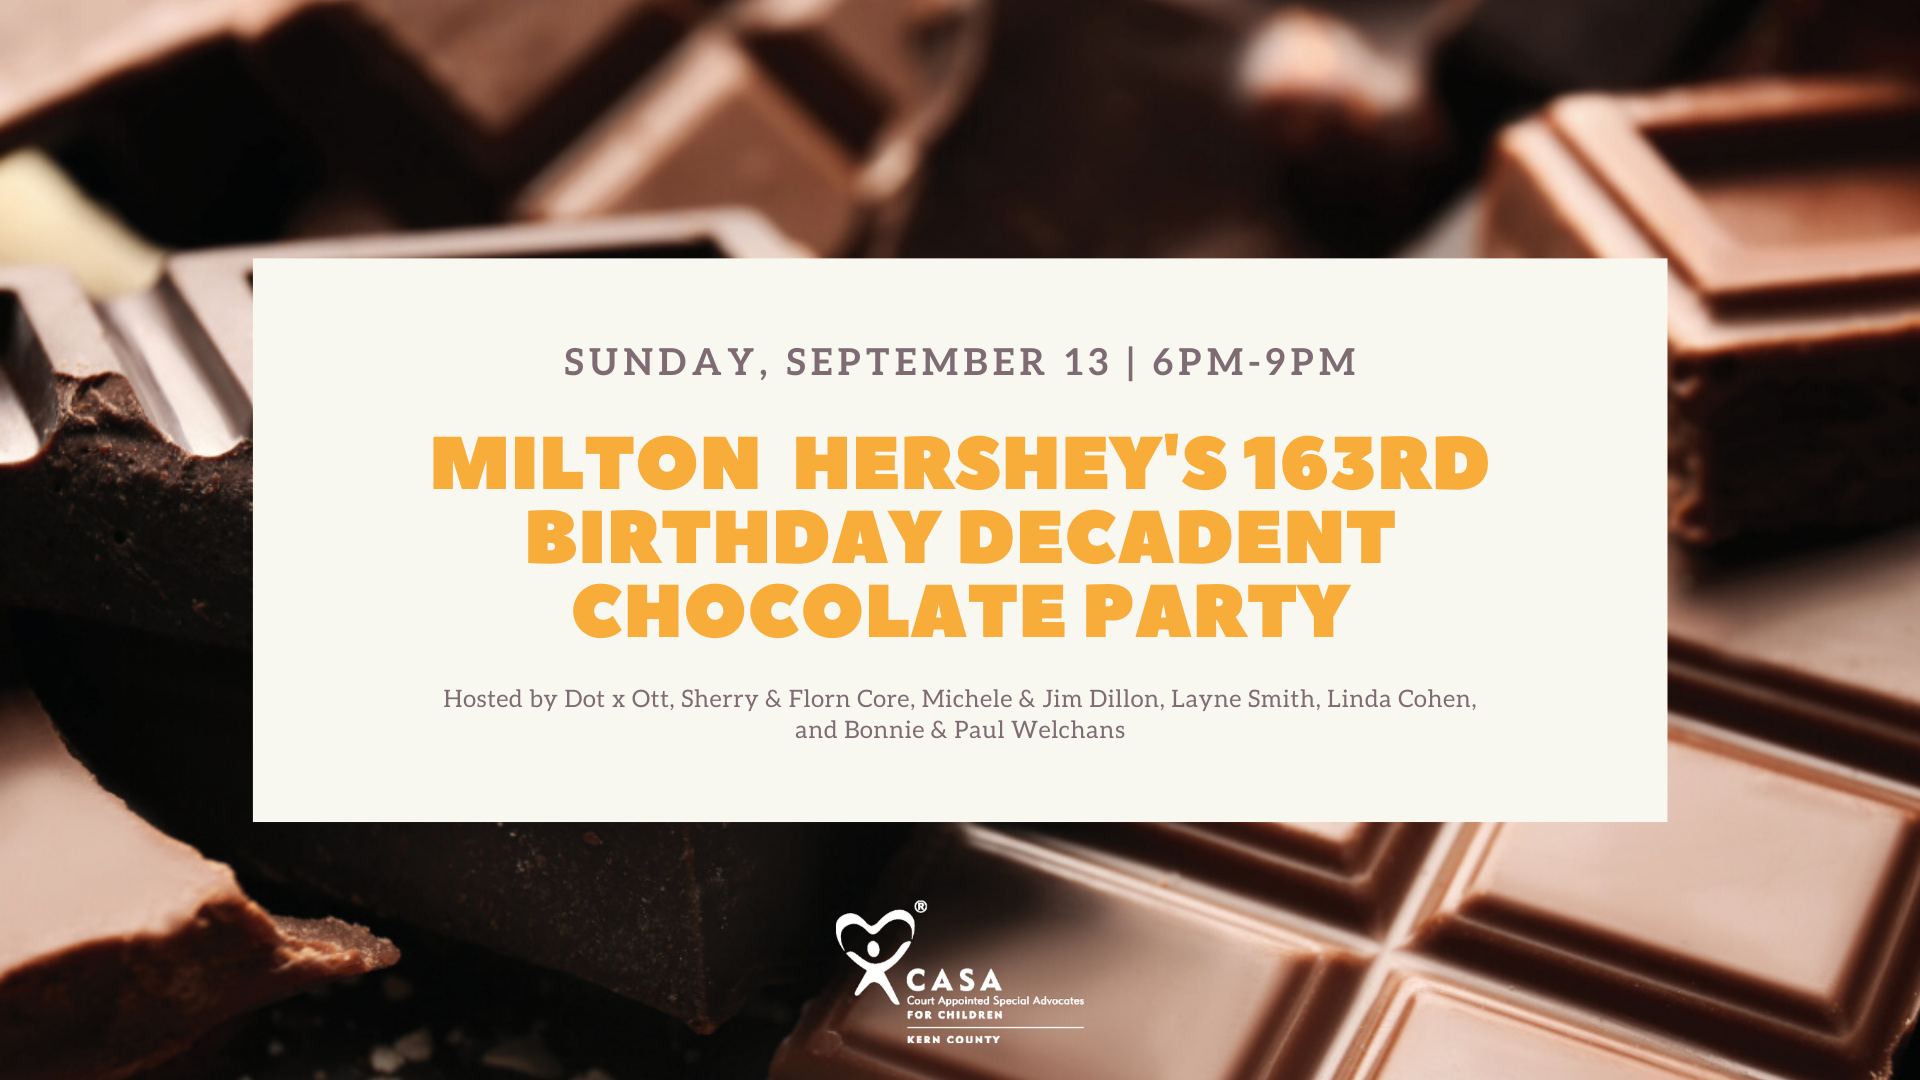 Milton Hershey's 163rd Birthday – Decadent Chocolate Party